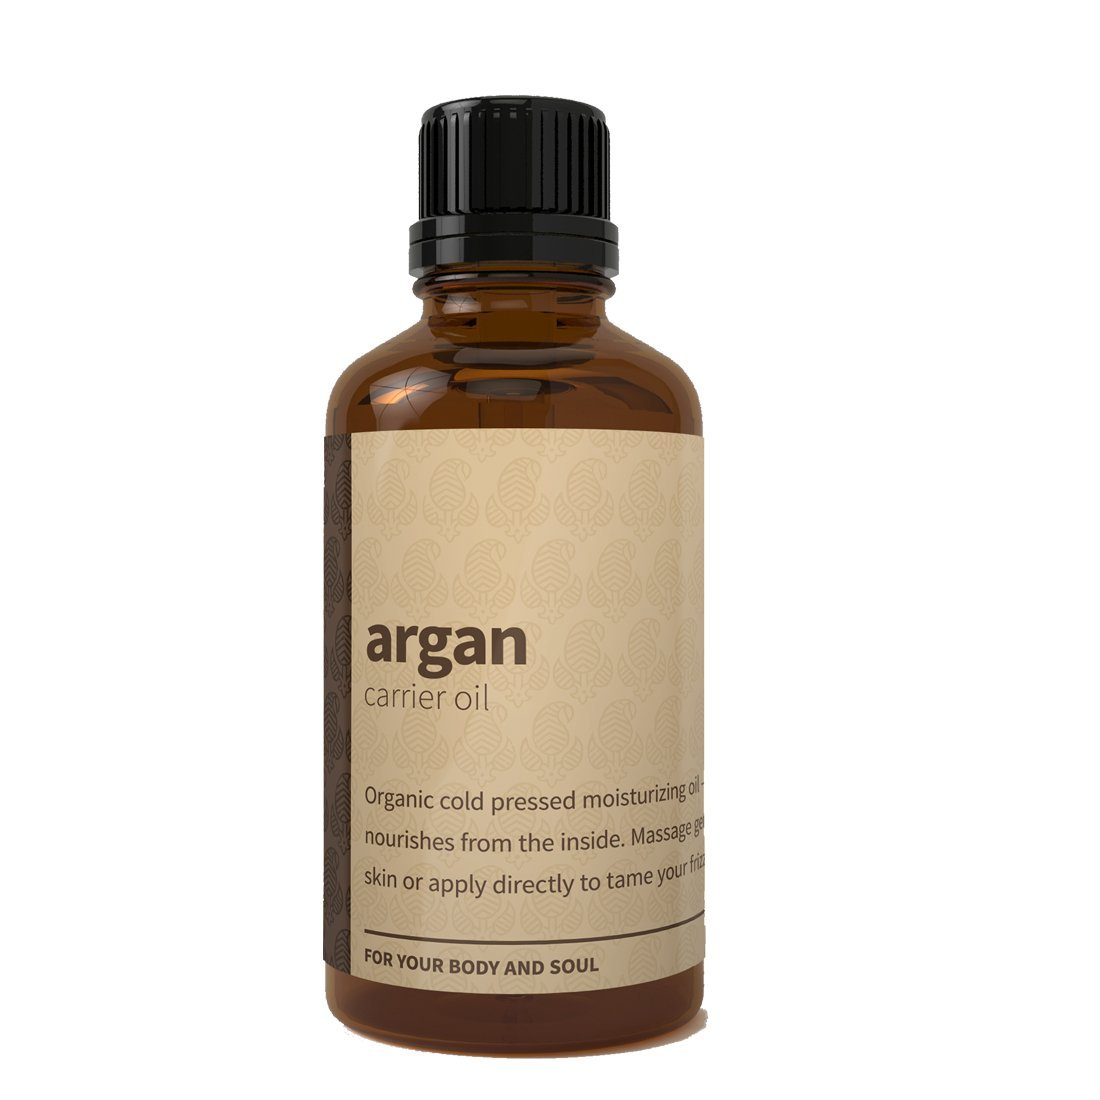 Rouh Argan Oil - Tried and Tested